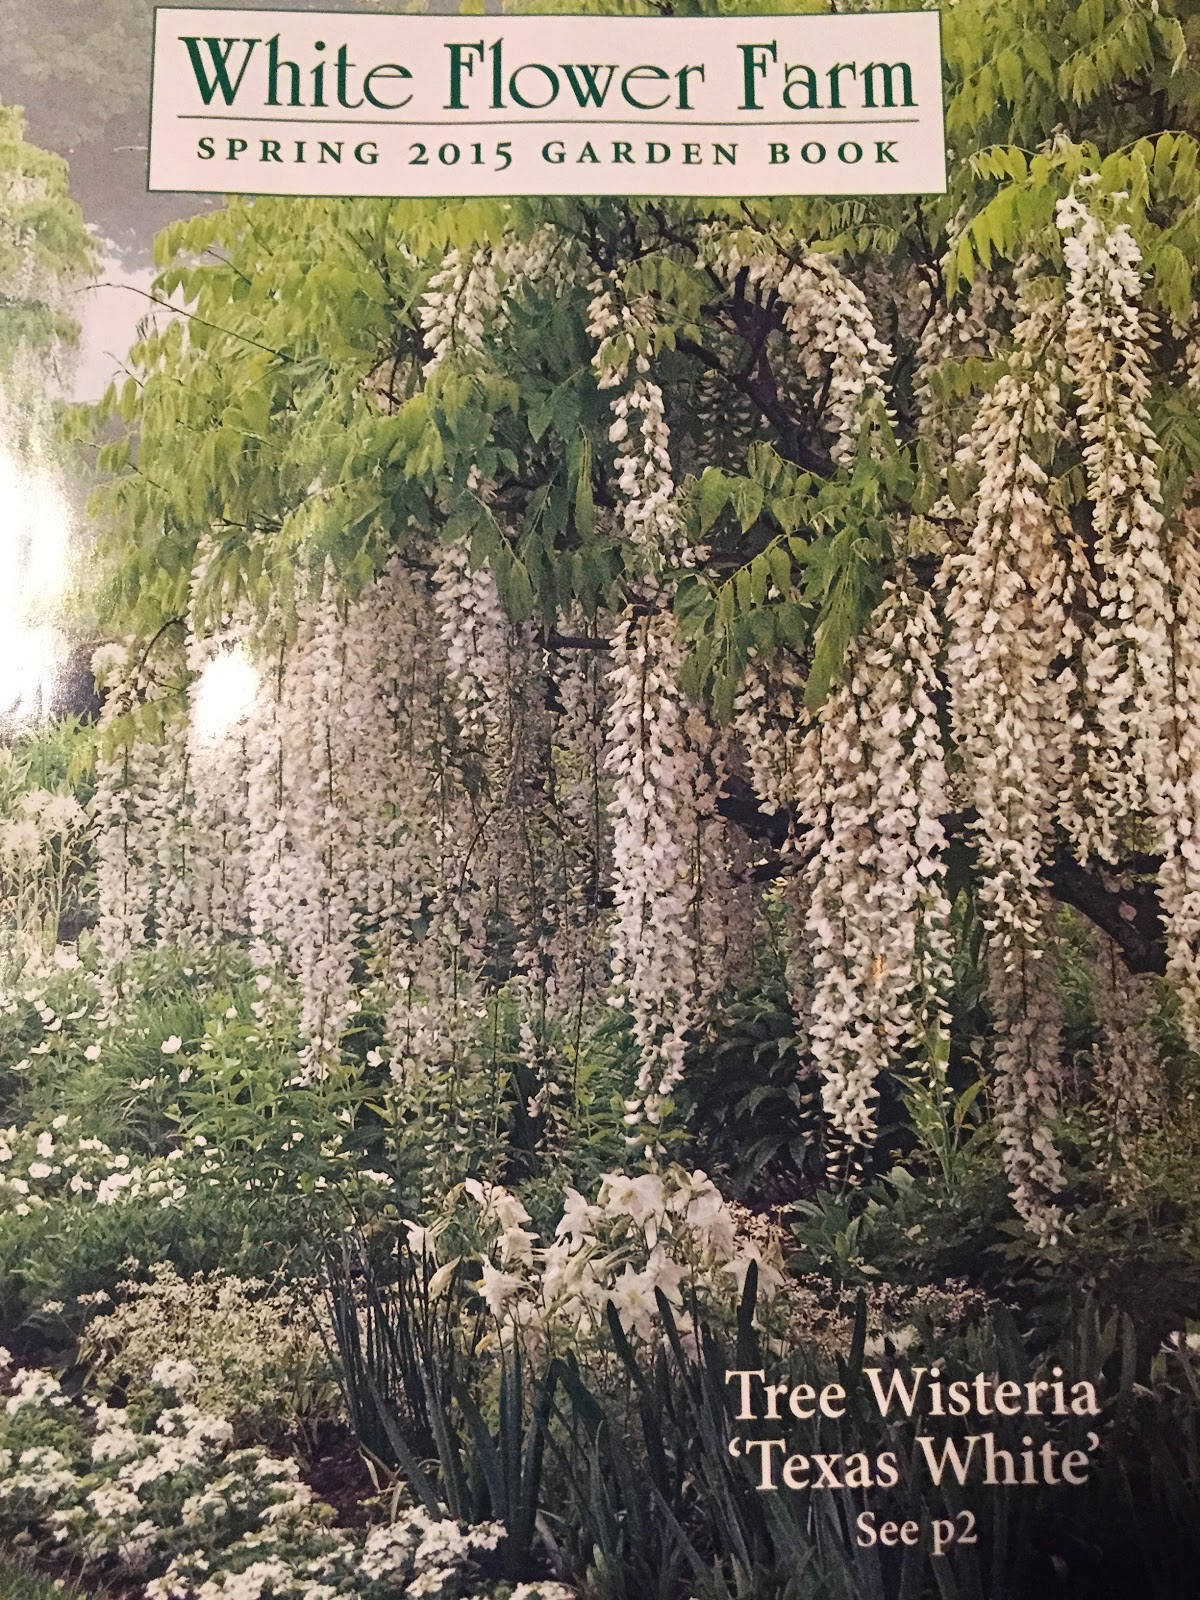 Bunny haven manor january 2015 one of the main sources of my covetous material longing the white flower farm catalog mightylinksfo